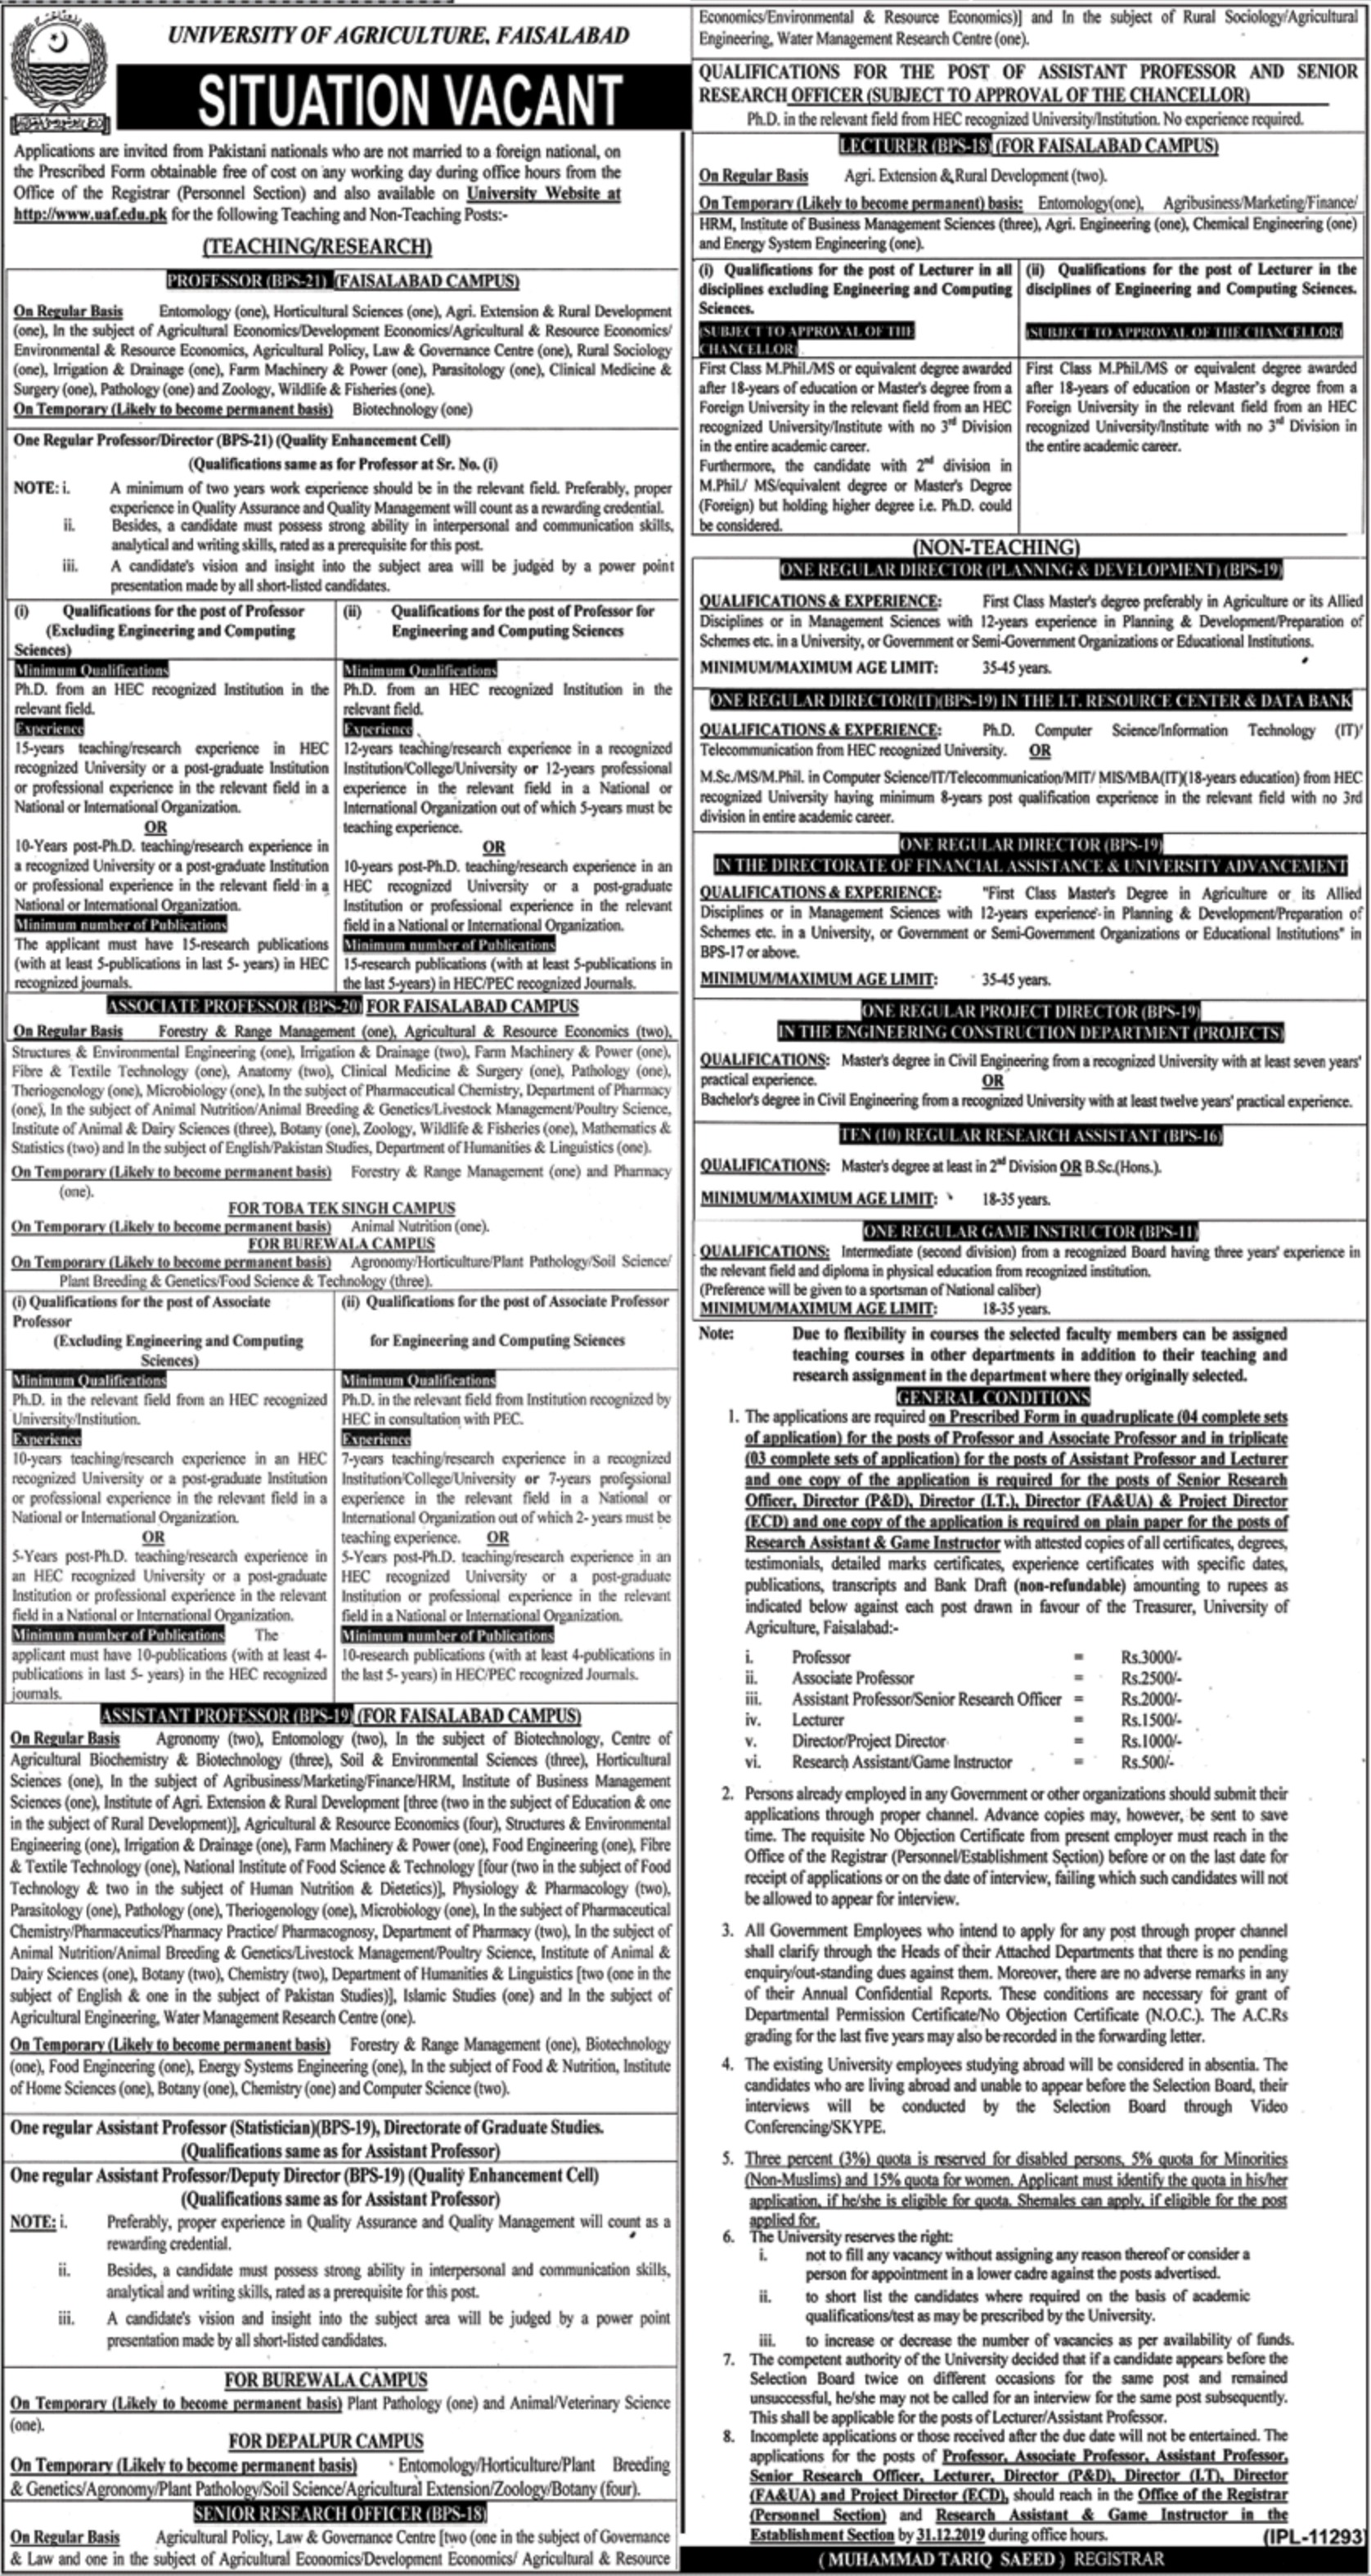 University of Agriculture Faisalabad Jobs 2019